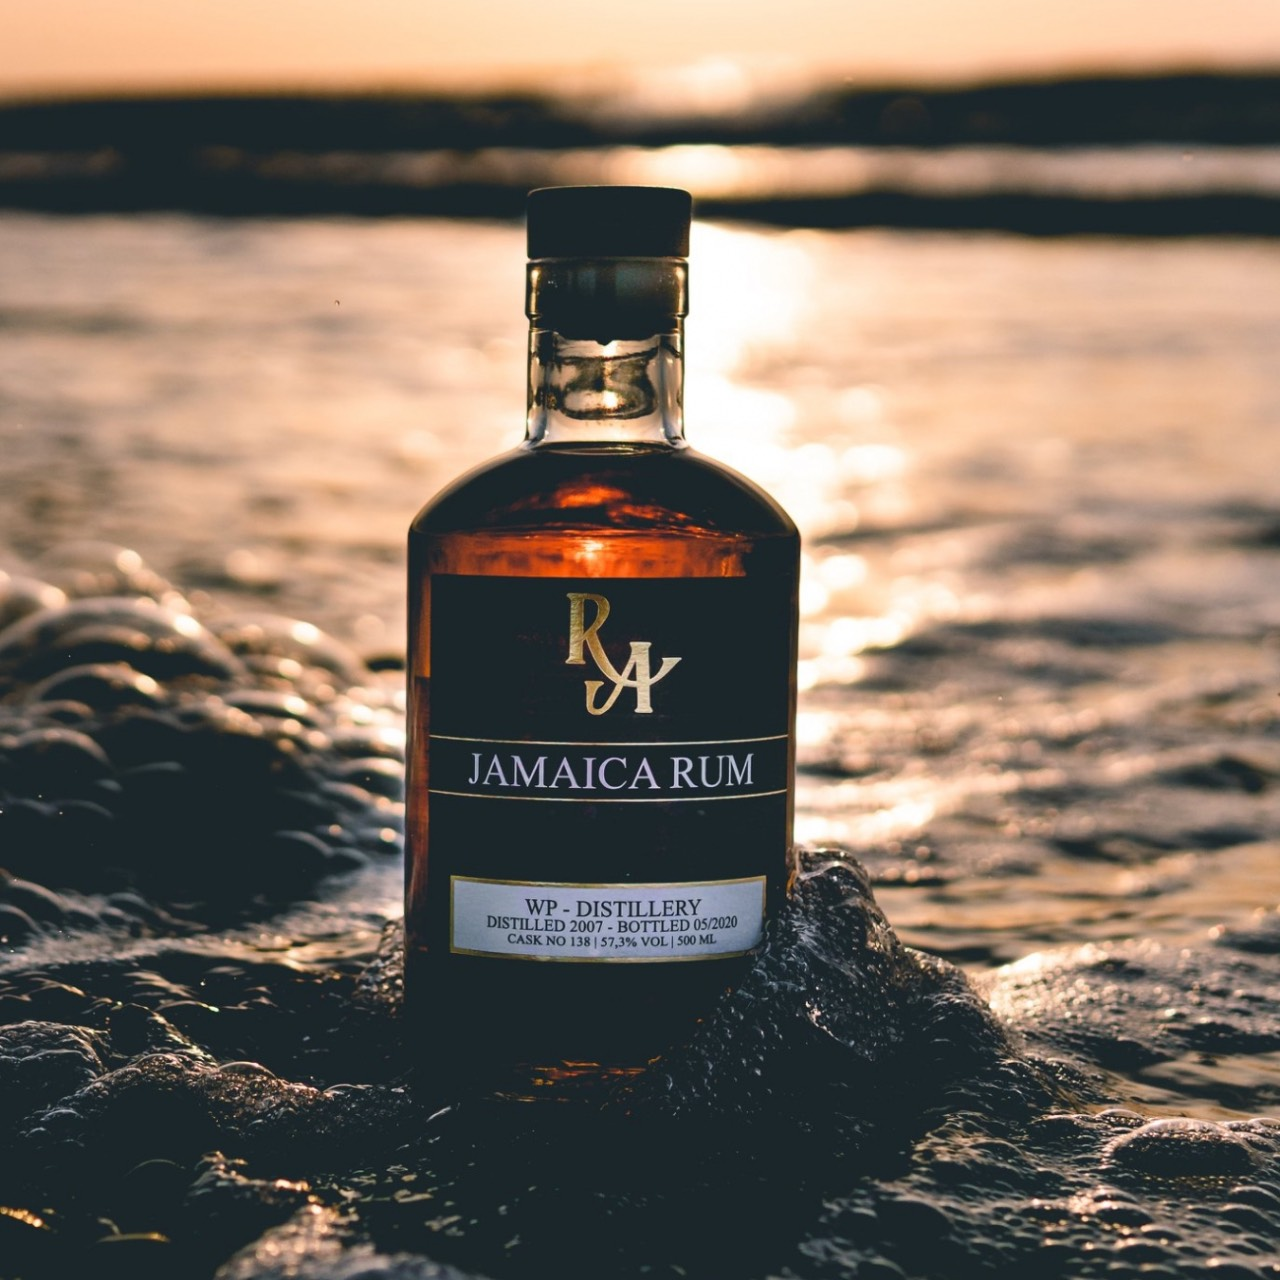 Bottle image of Rum Artesanal